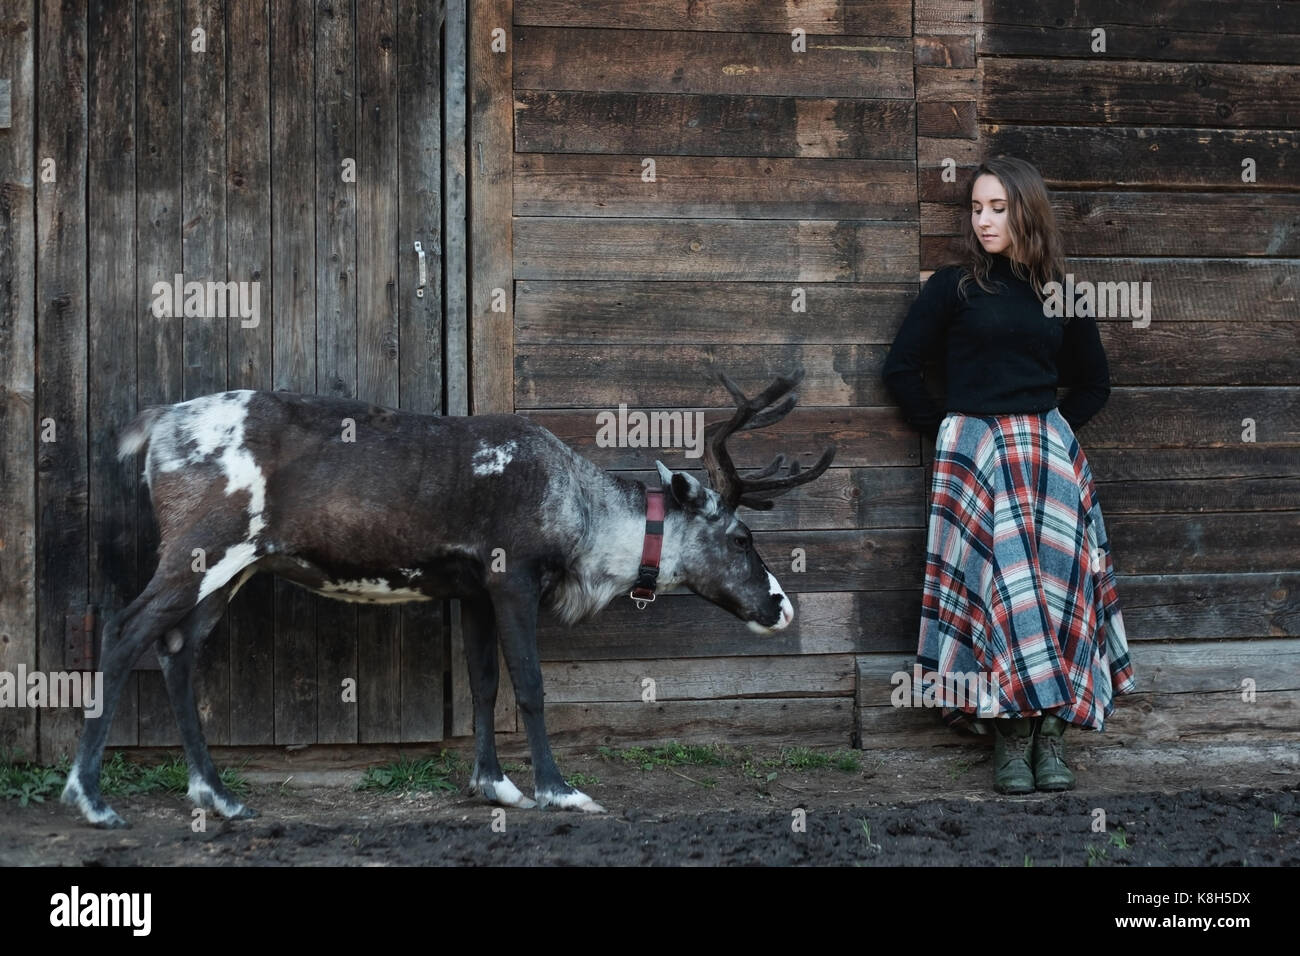 A young European girl in a plaid skirt is standing next to a reindeer near a wooden wall. - Stock Image